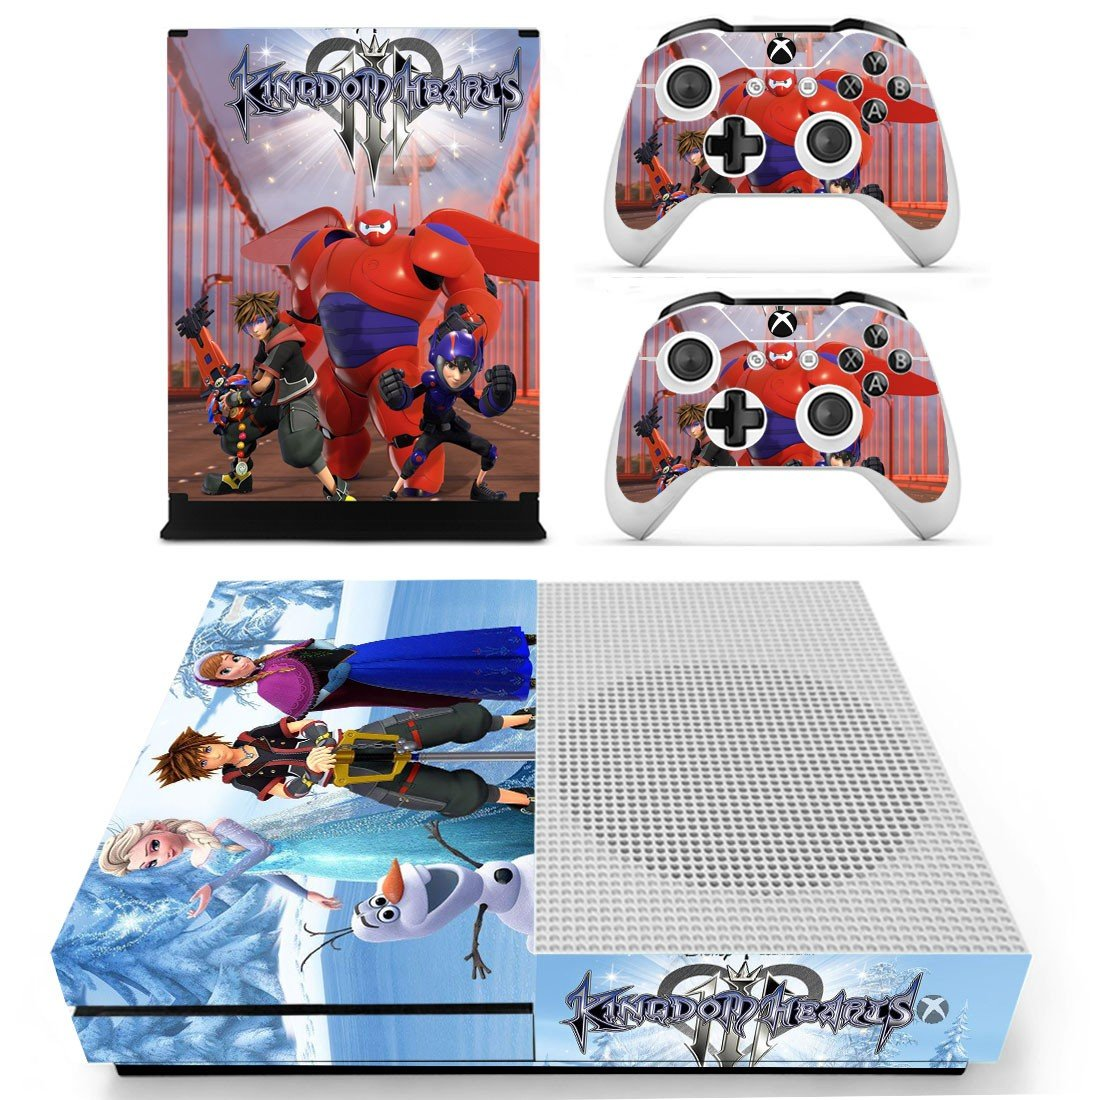 Kingdom Hearts 3 decal skin sticker for Xbox One S console and controllers